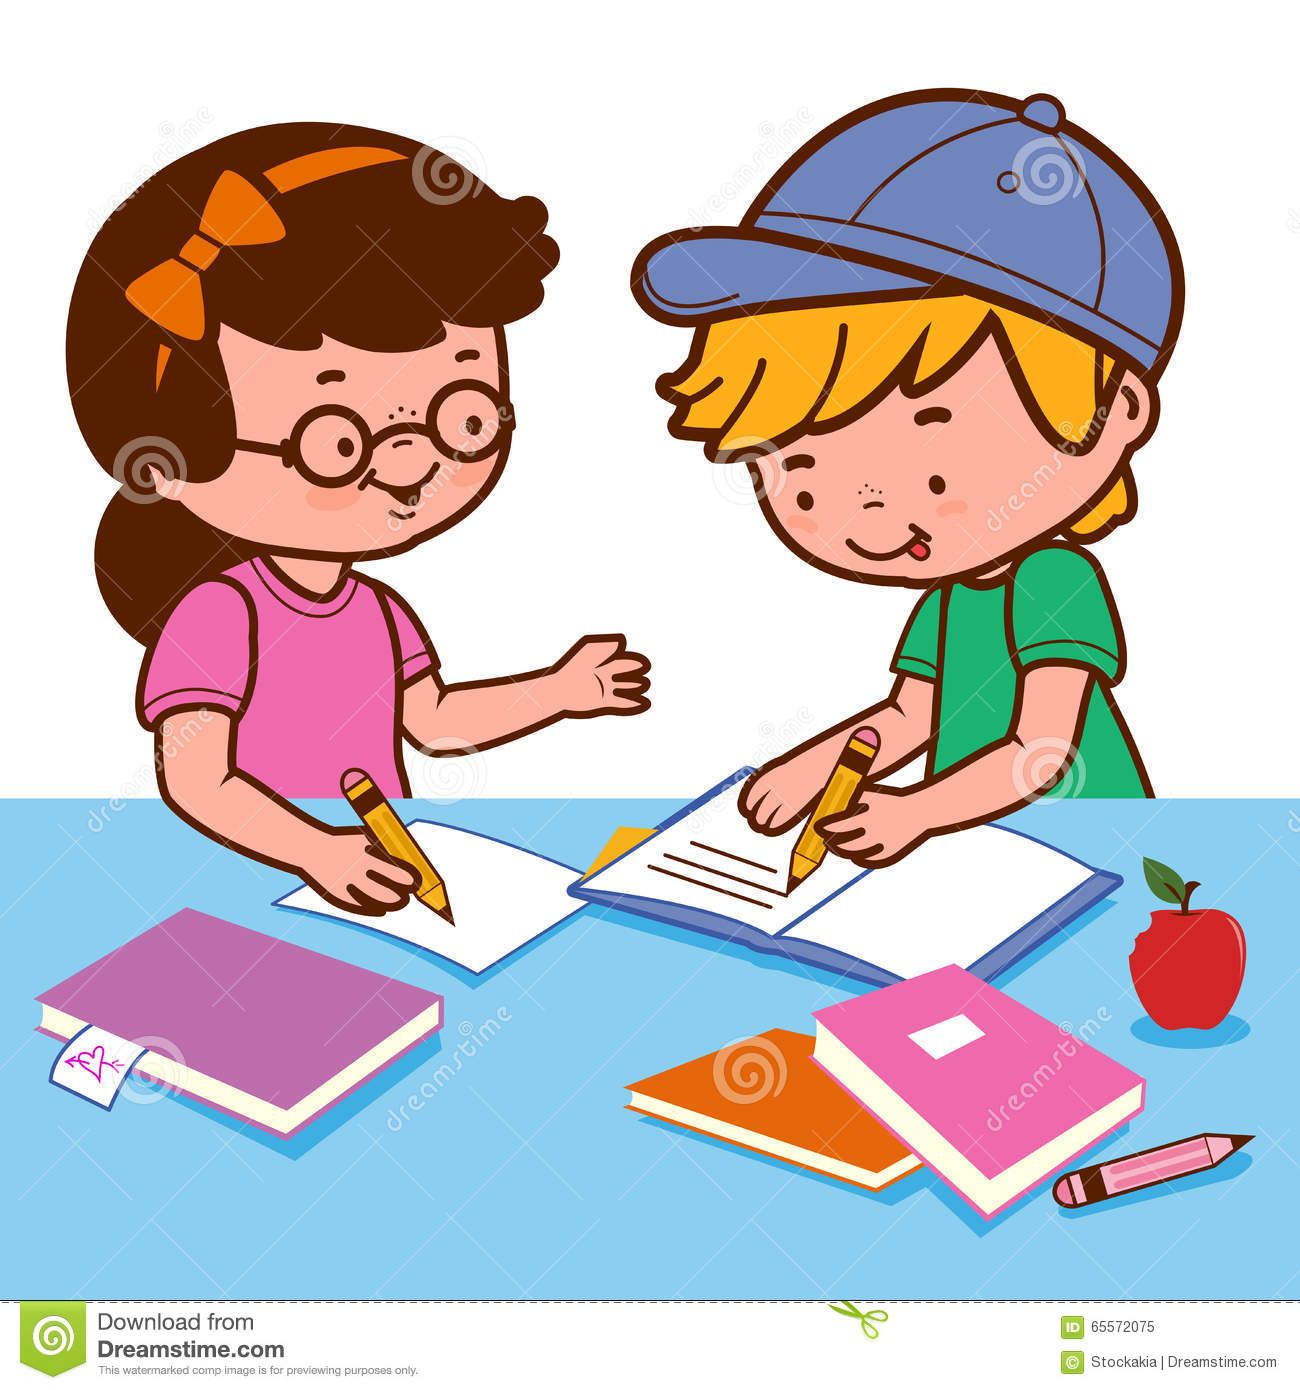 006 Girl and boy doing homework